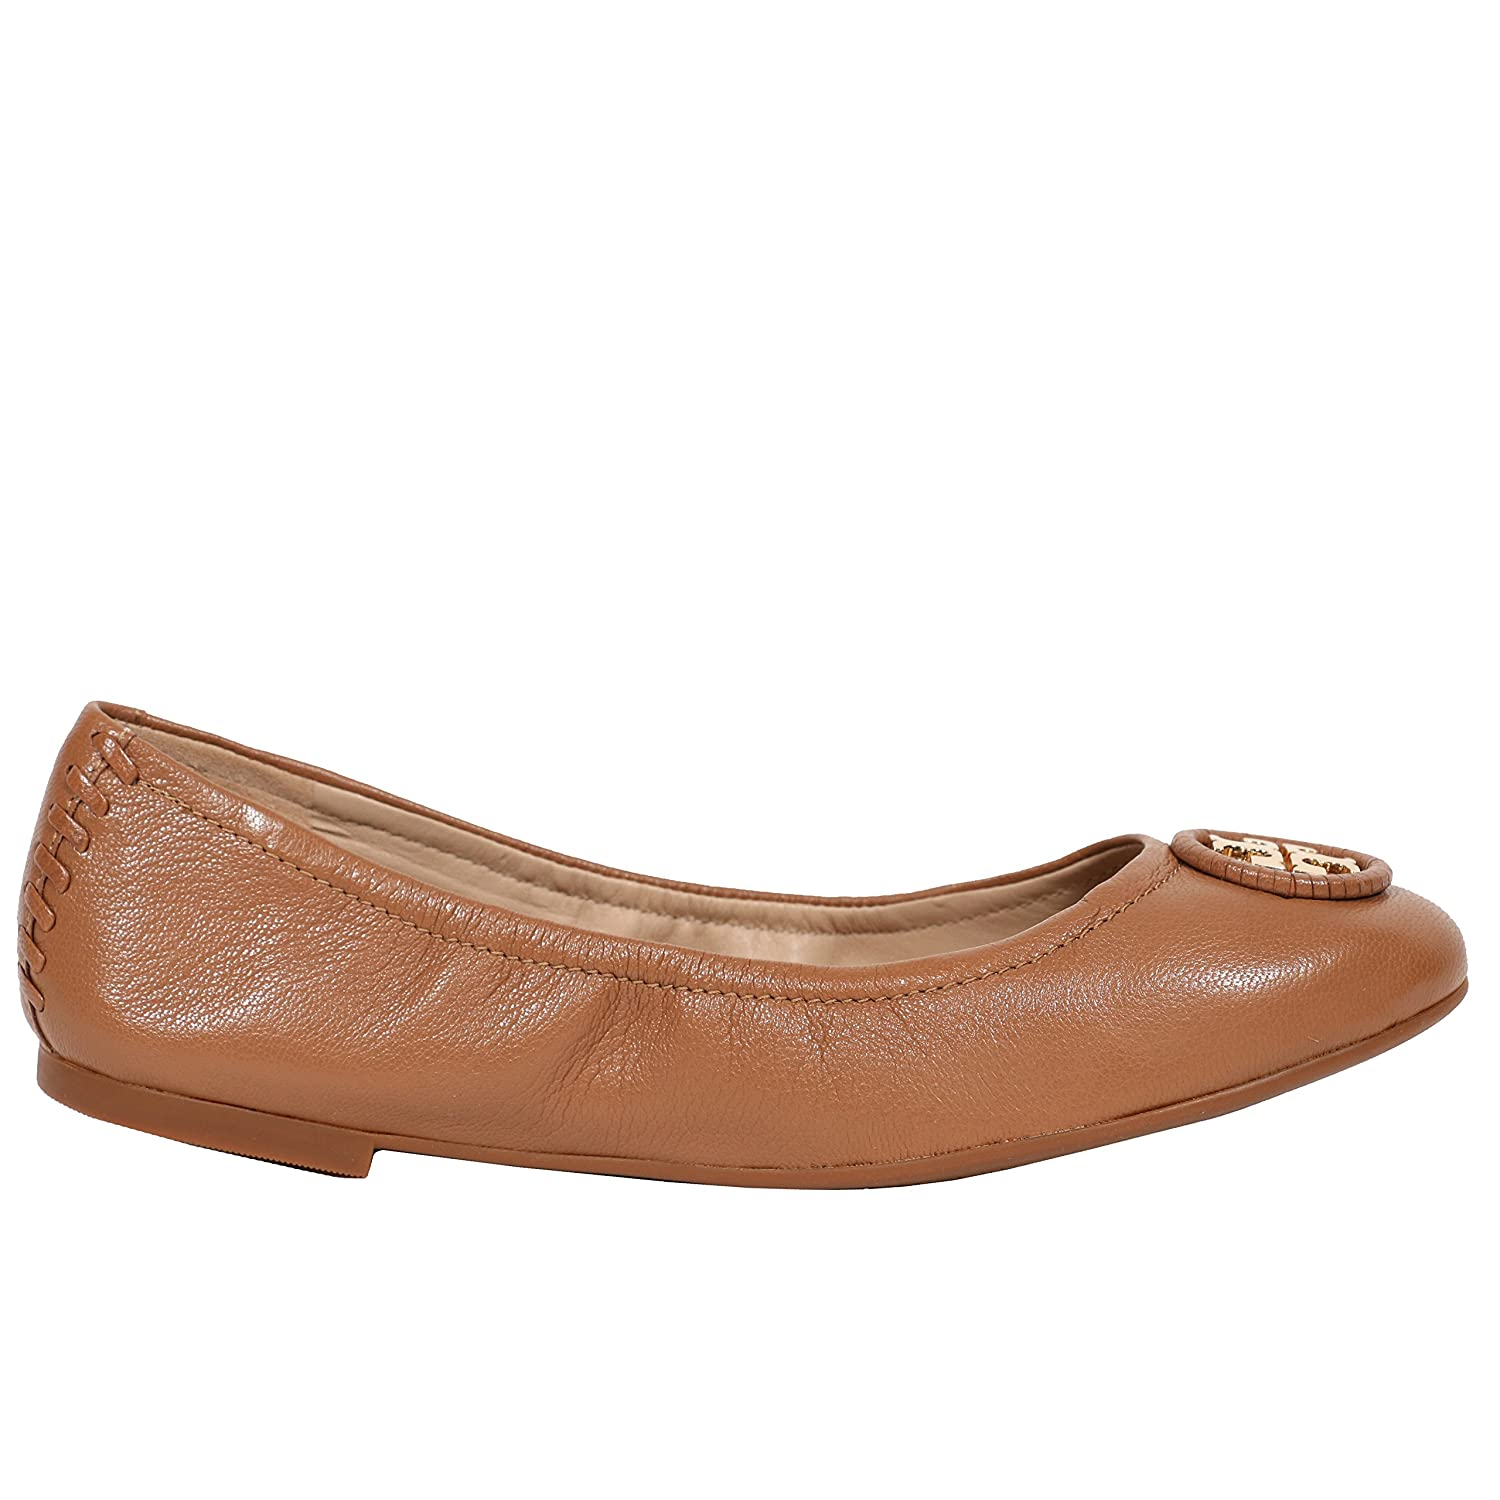 Amazon.com | Tory Burch Allie Shoes Flats Ballet Leather Logo (6.5 B(M) US,  Royal Tan) | Flats